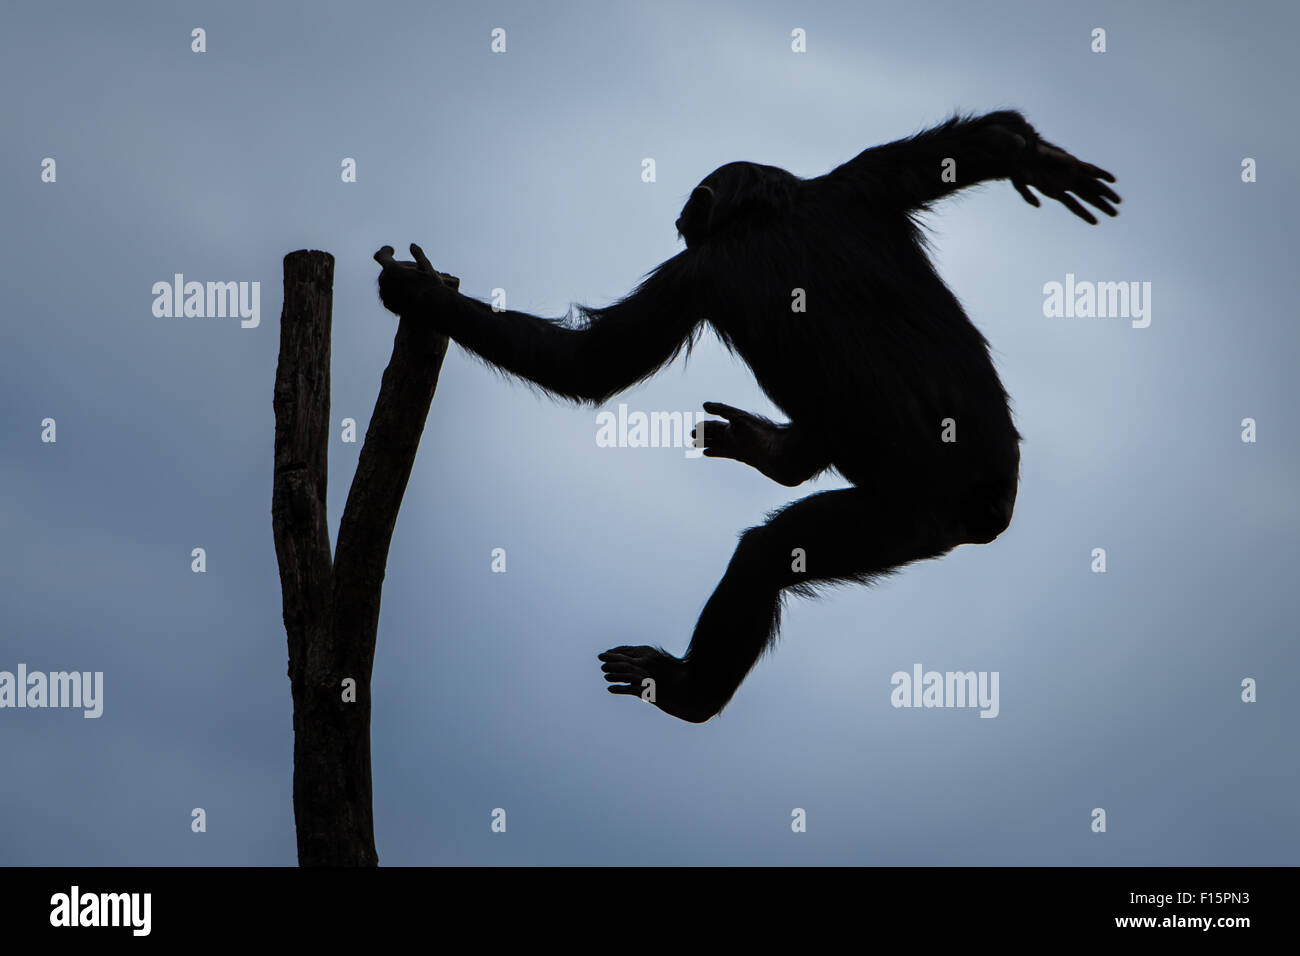 A Silhouette of a Swinging Chimpanzee - Stock Image